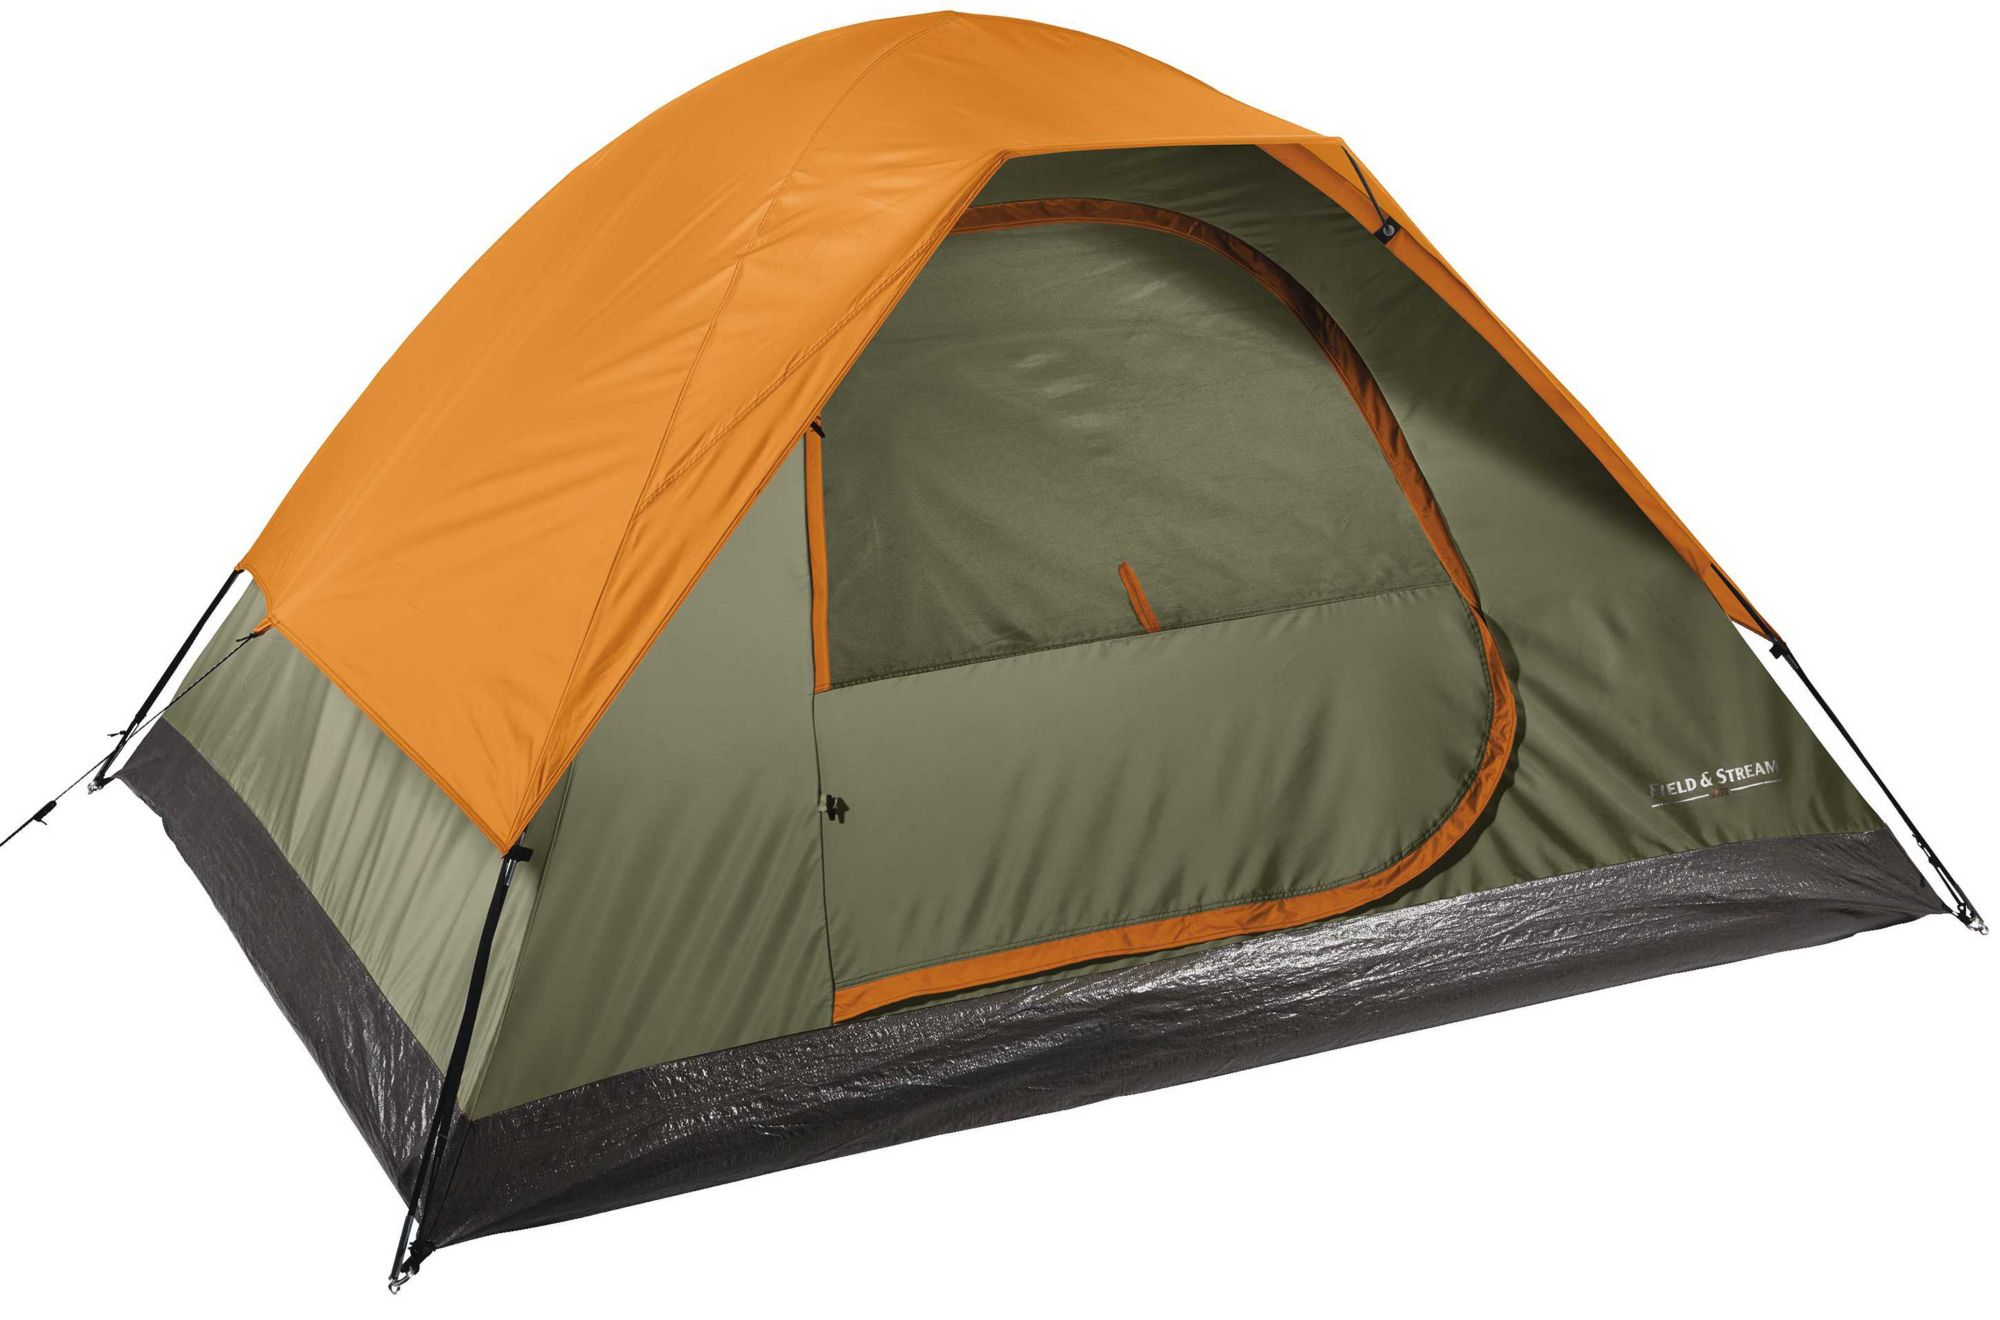 noImageFound ???  sc 1 st  DICKu0027S Sporting Goods & Field u0026 Stream 3 Person Dome Tent | DICKu0027S Sporting Goods